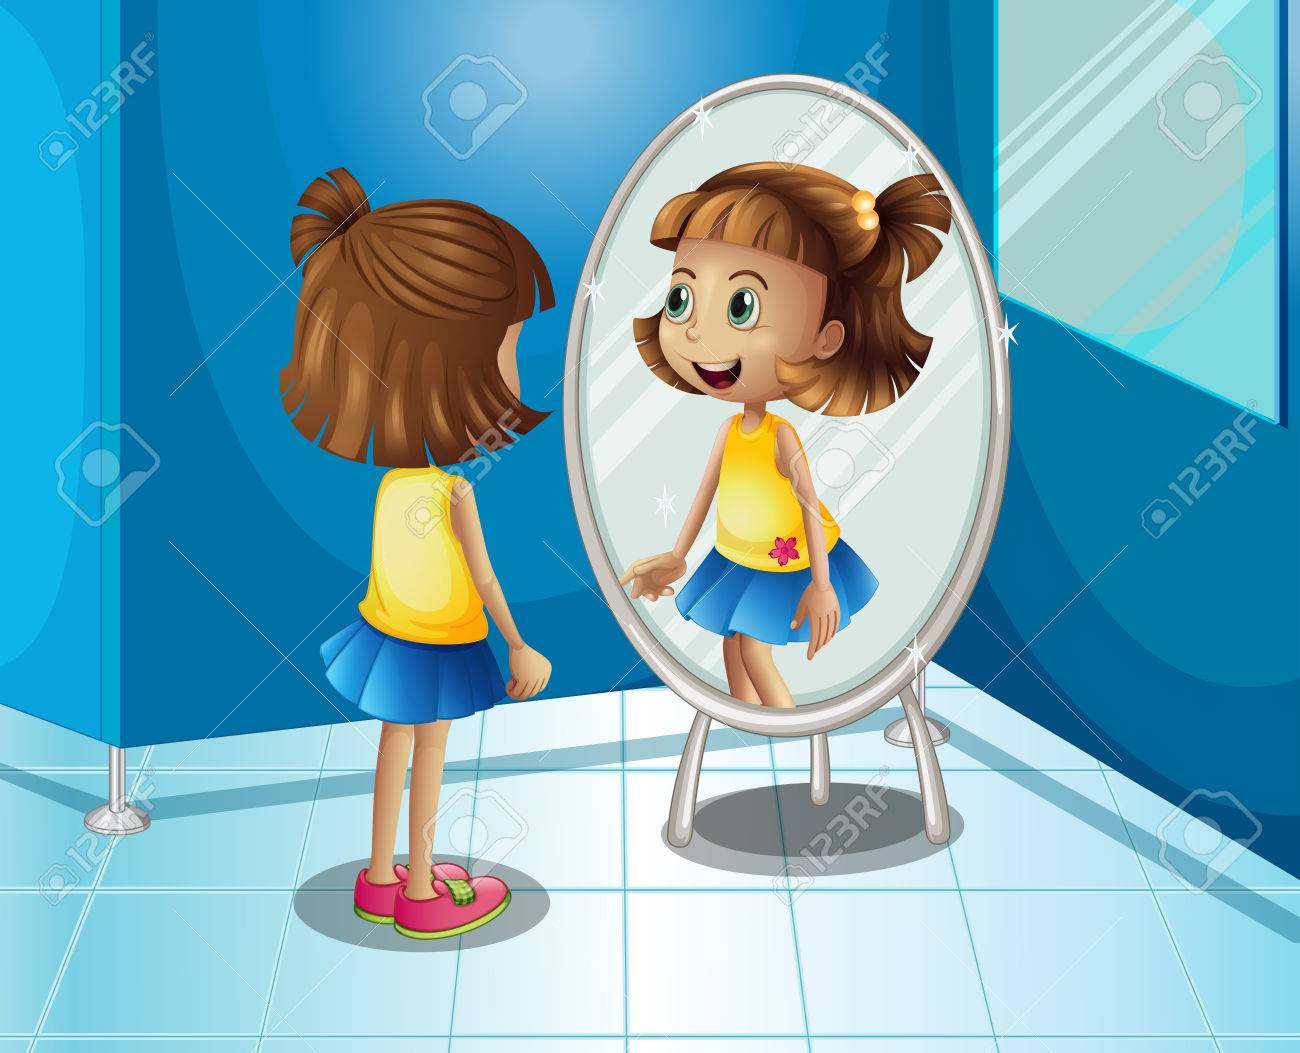 Happy girl looking at the mirror in bathroom illustration - 70683417